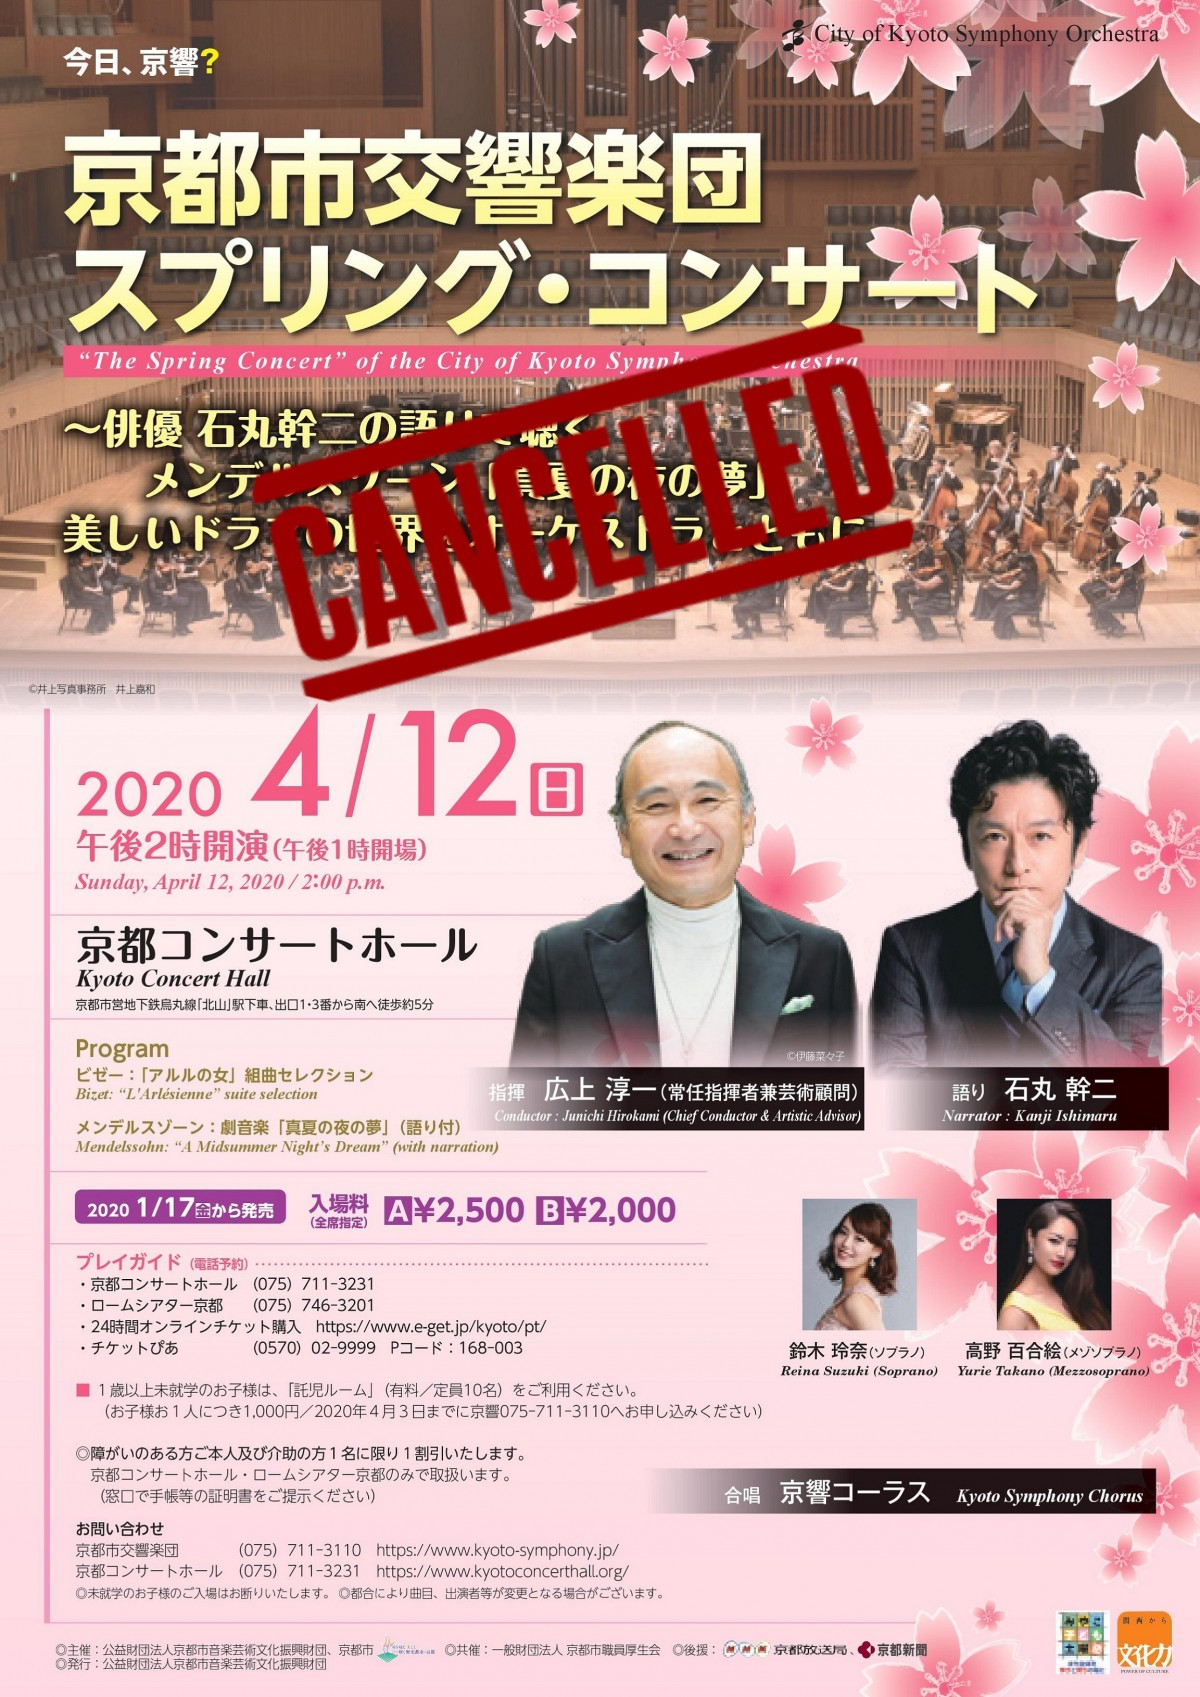 <CANCELLED>